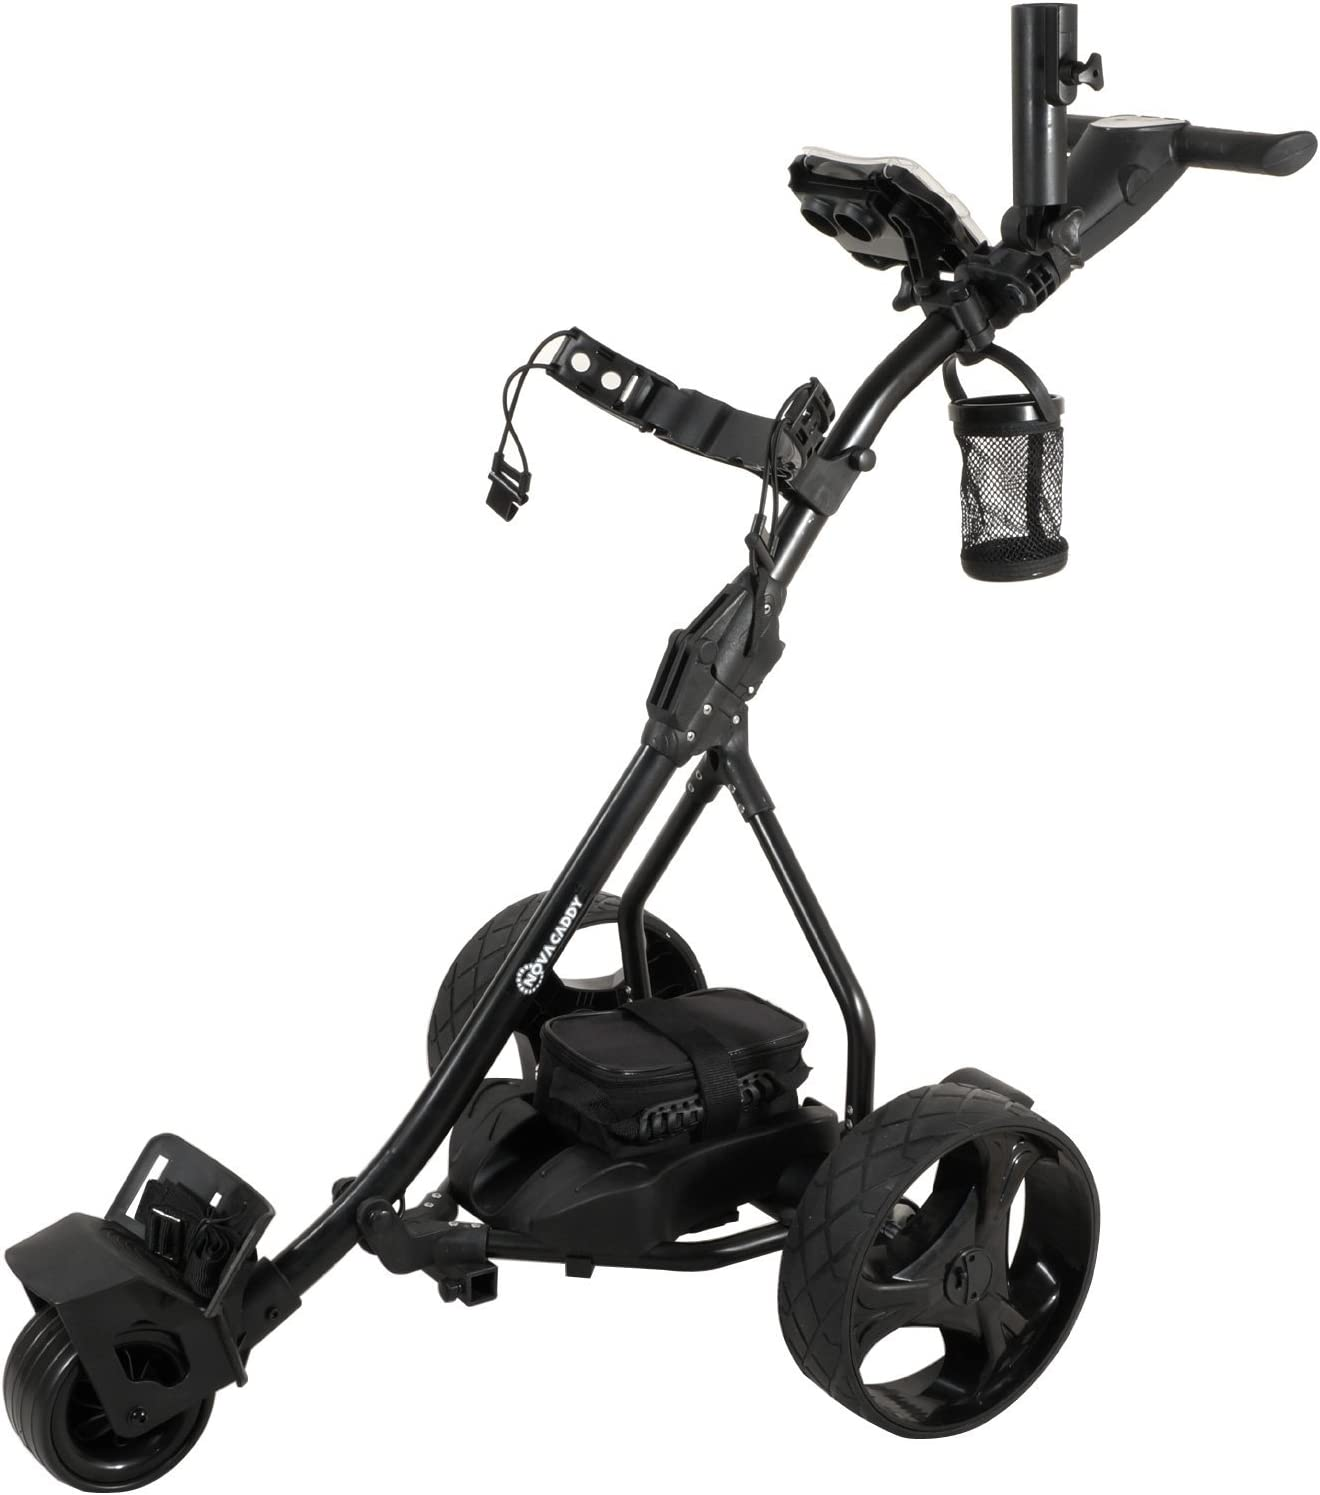 6 Best Electric Golf Push Carts Short time Review 2